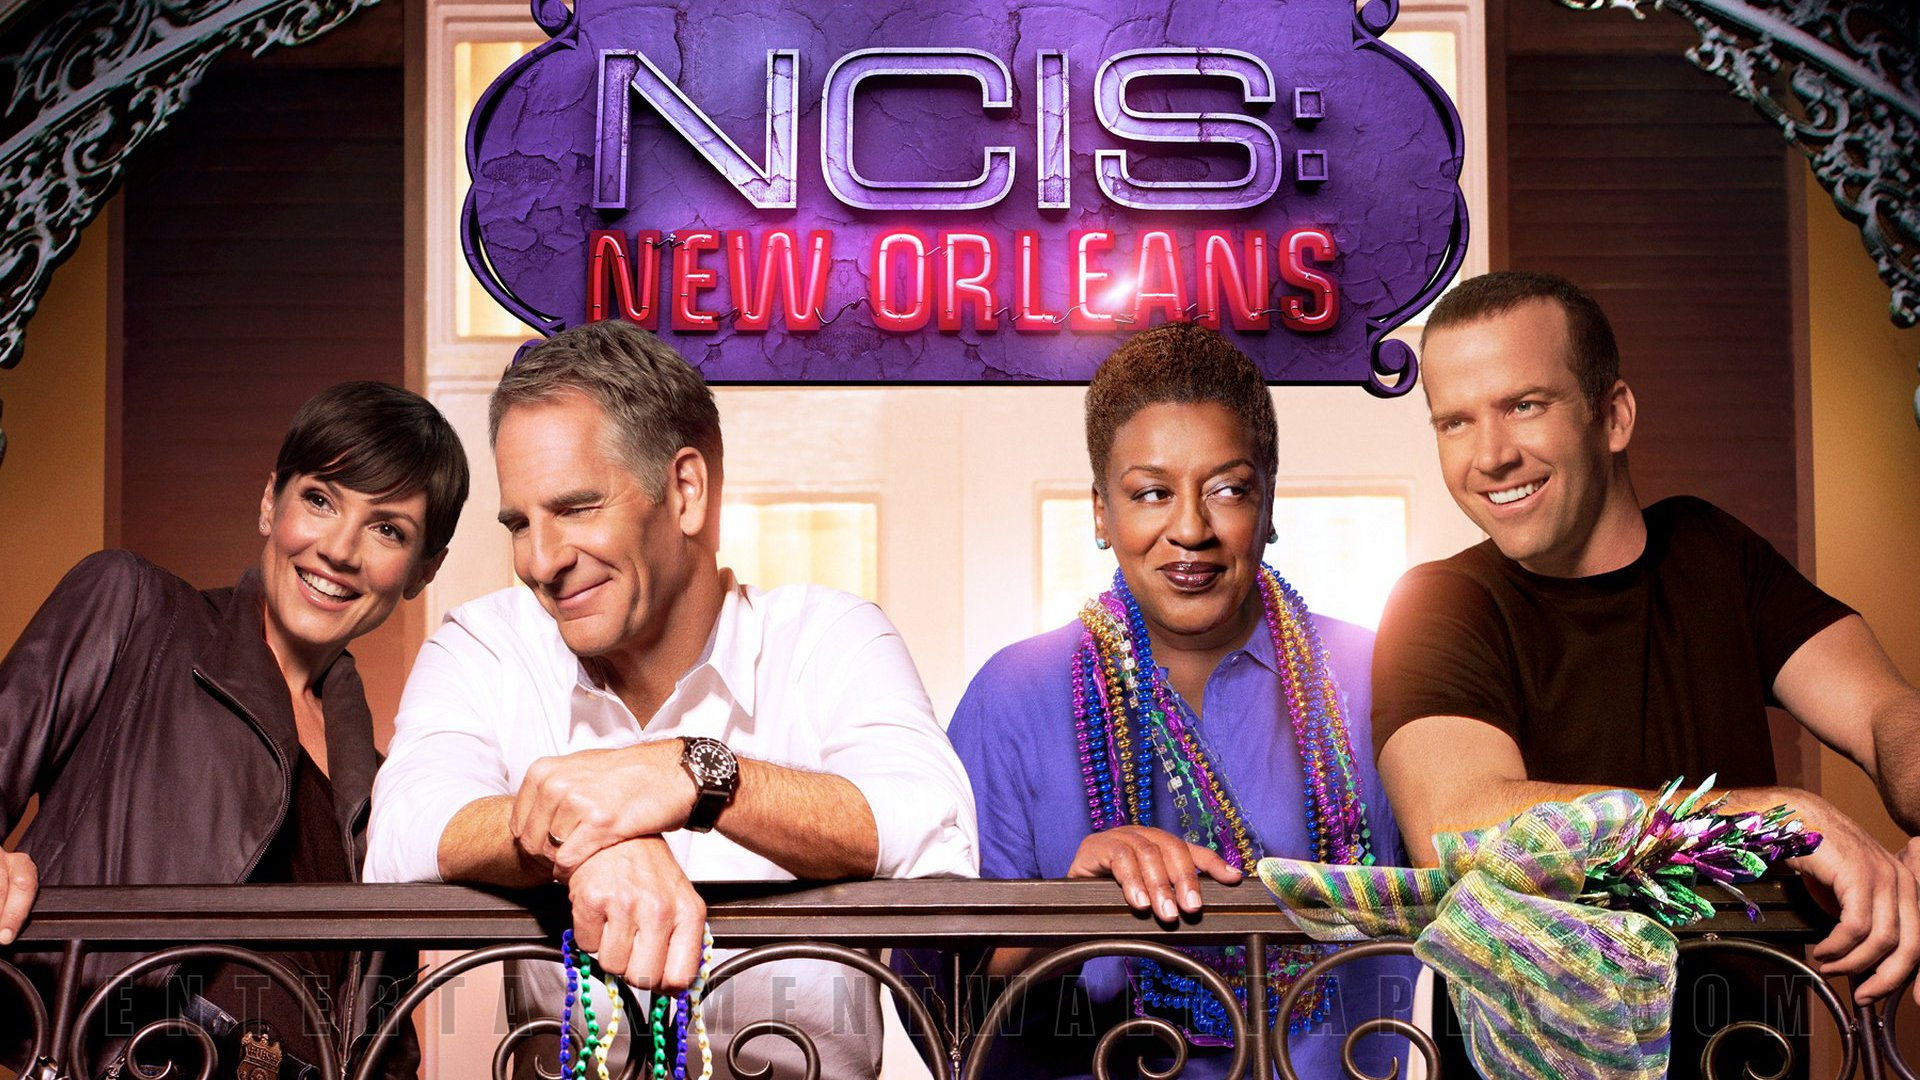 NCIS New Orleans Images Wallpaper HD And Background Photos